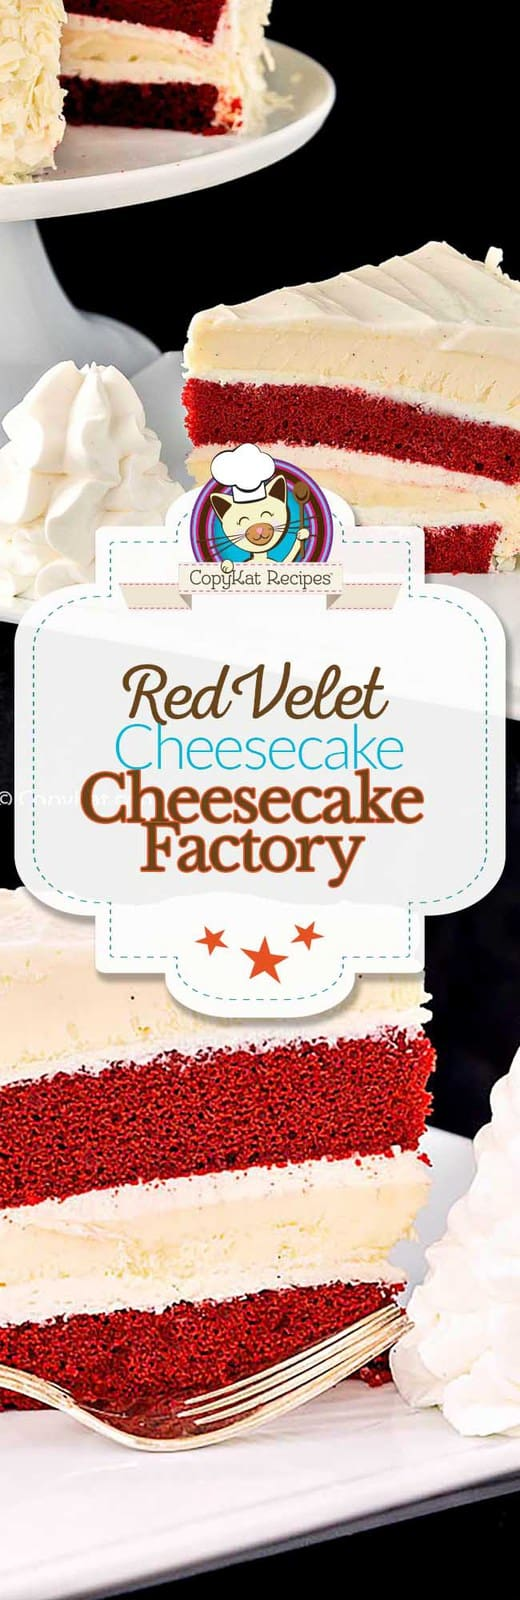 You can recreate these Cheesecake Factory Red Velvet Cheesecake at home with this copycat recipe.